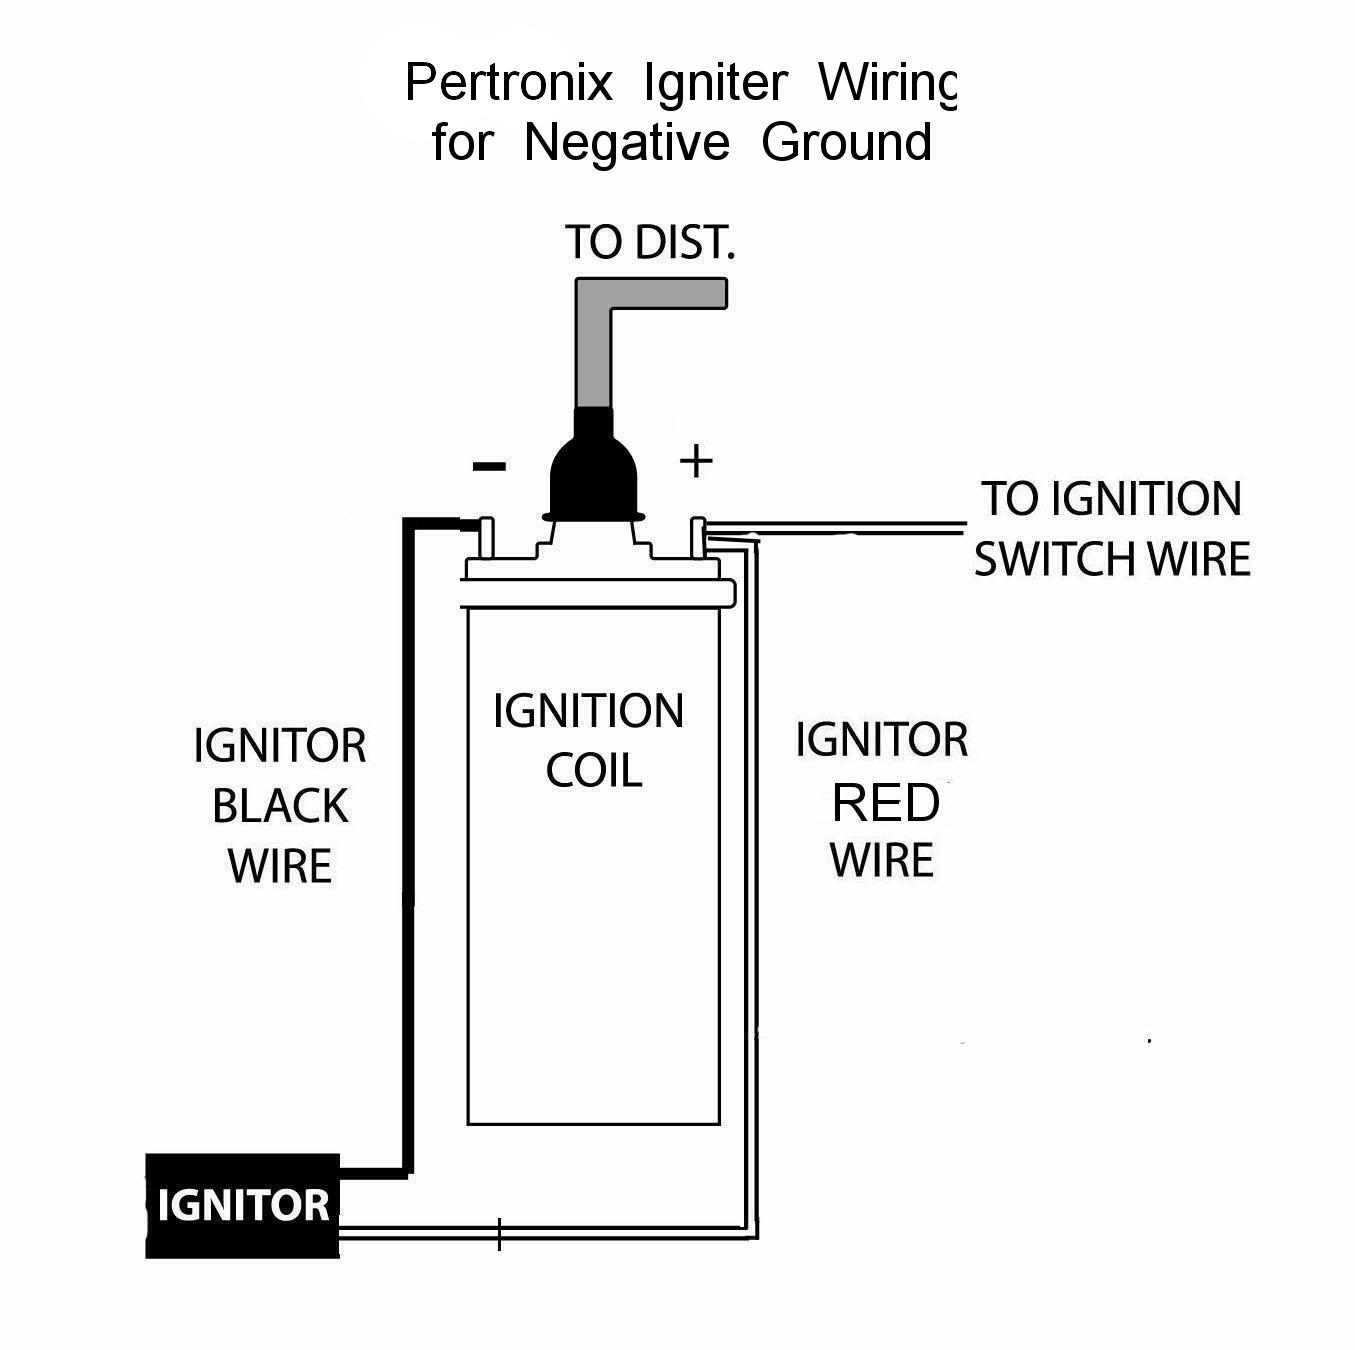 D61 Wiring Diagram Auto Electrical Pertronix 24 Images